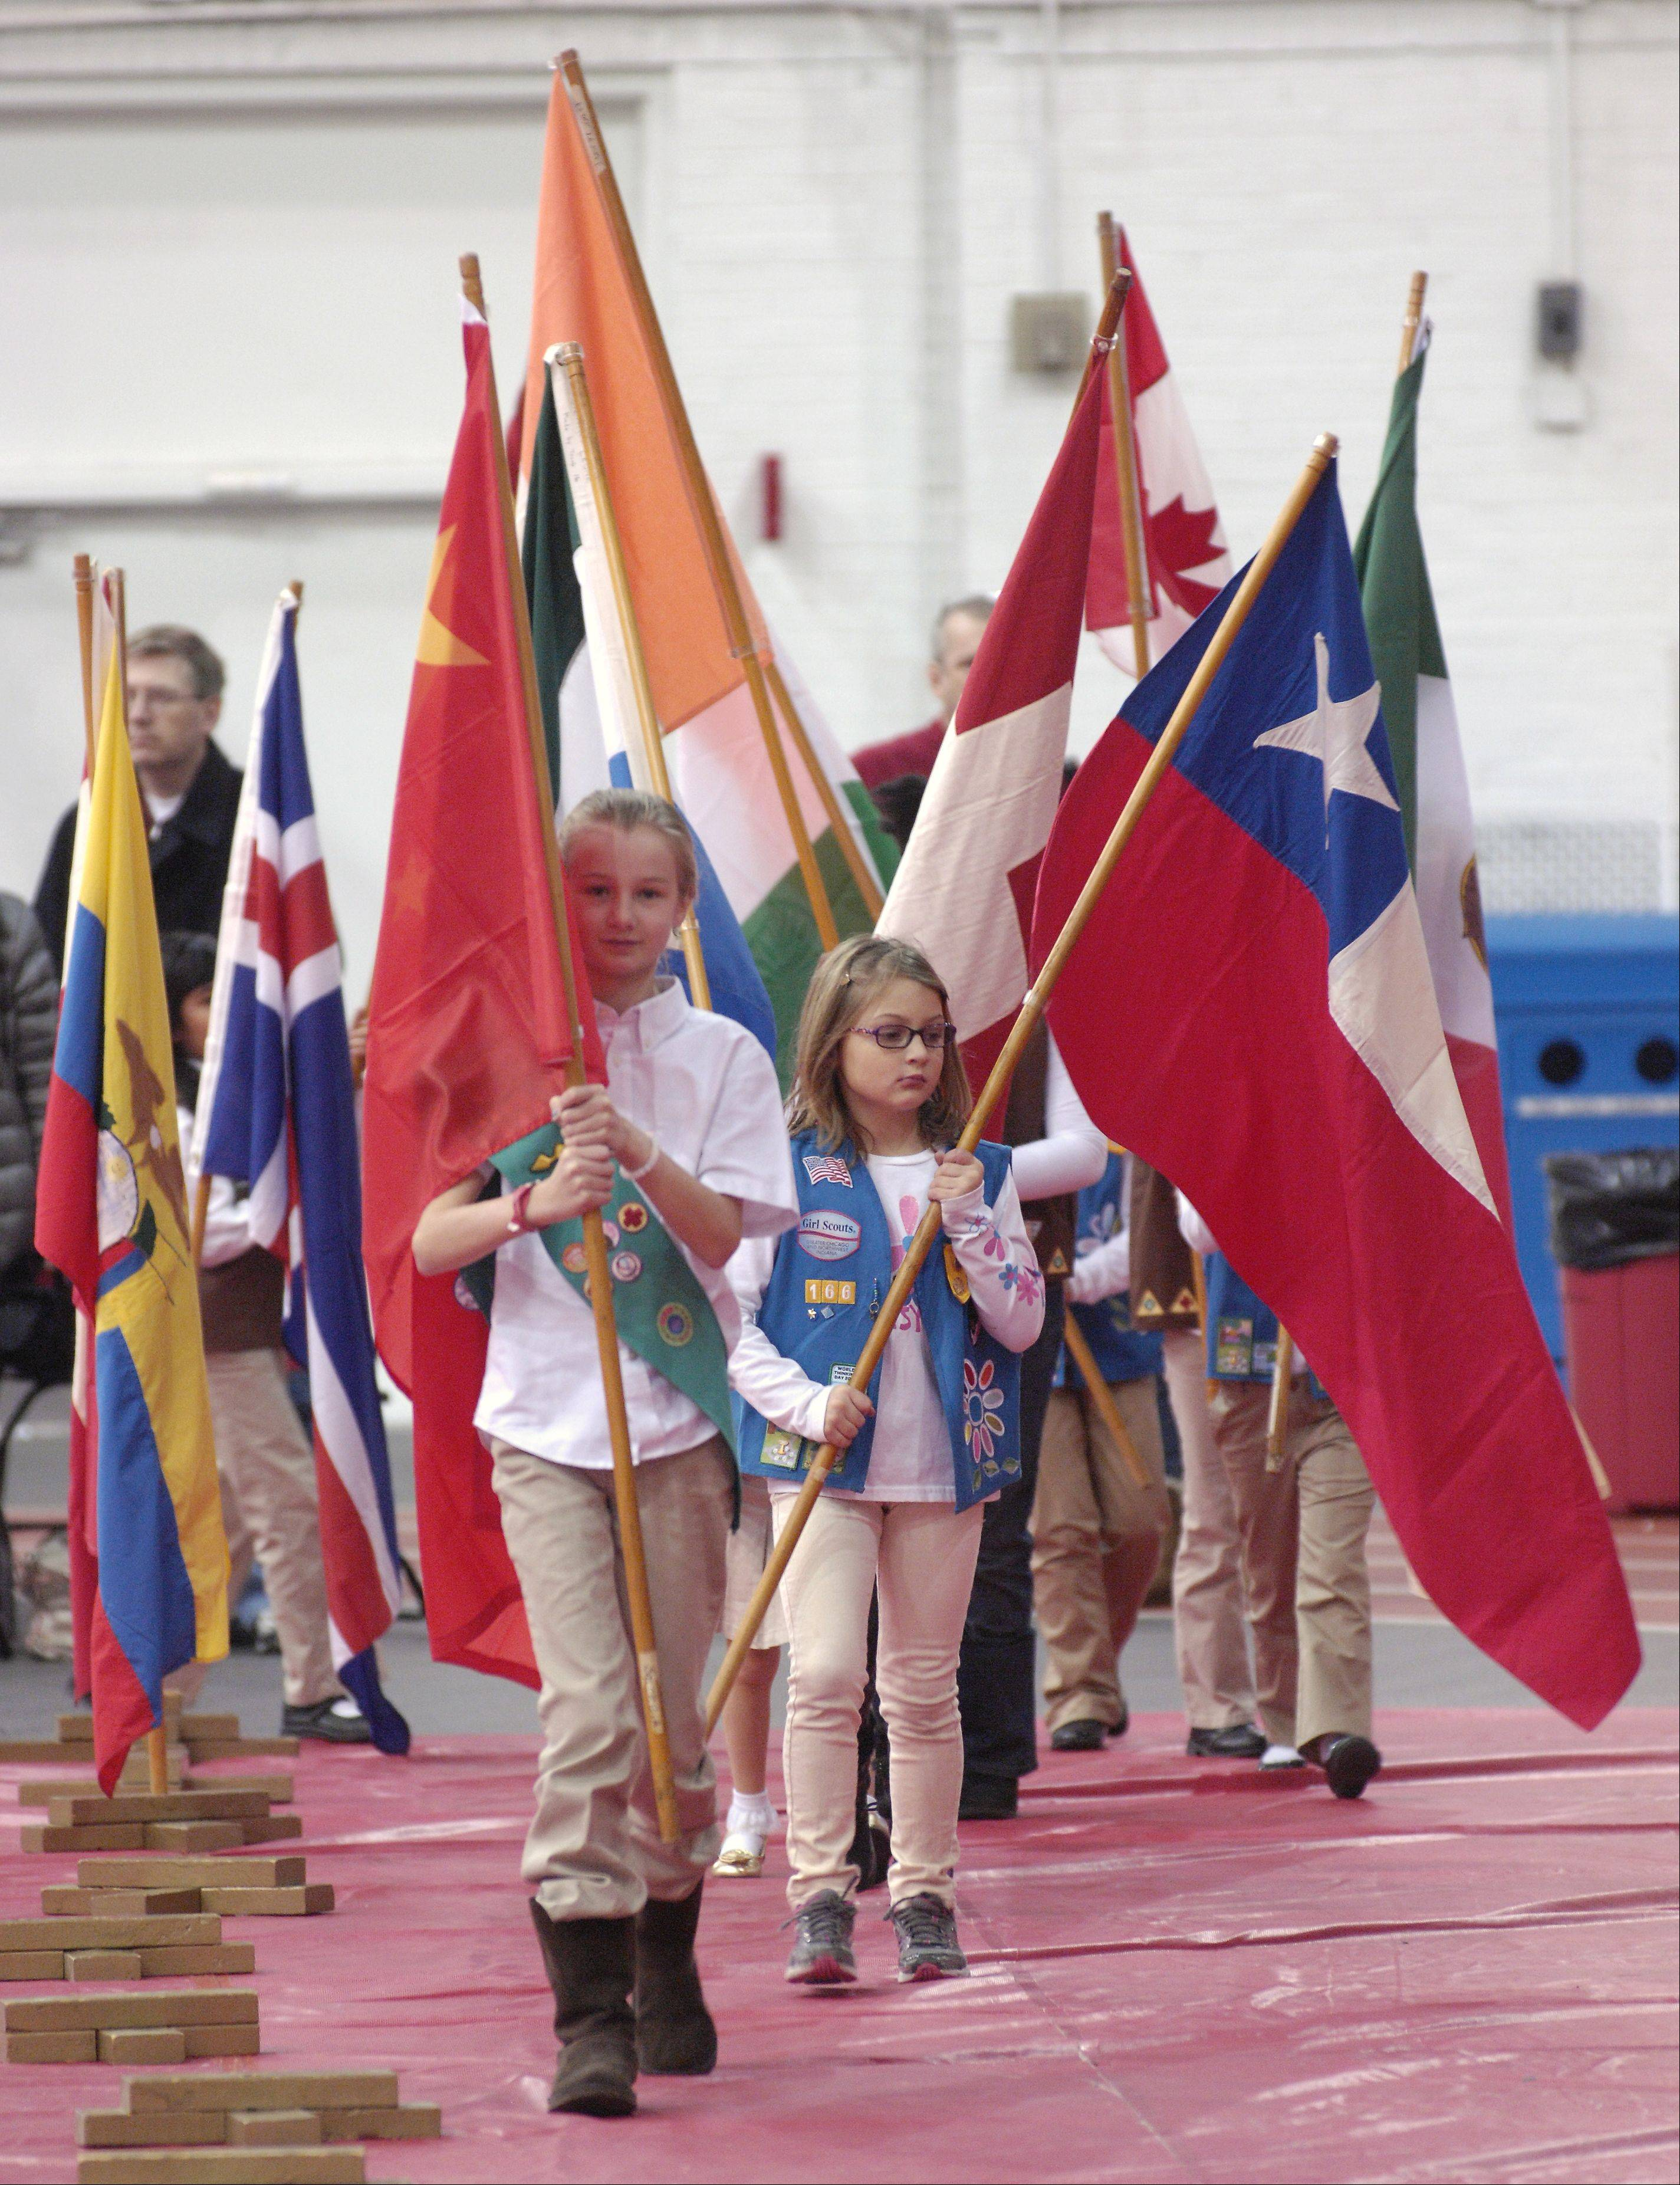 A flag ceremony will open North Central College's International Festival at noon Sunday, Feb. 9, at Merner Field House in Naperville. The annual celebration features international cuisine, language immersion rooms, multicultural performances and more.